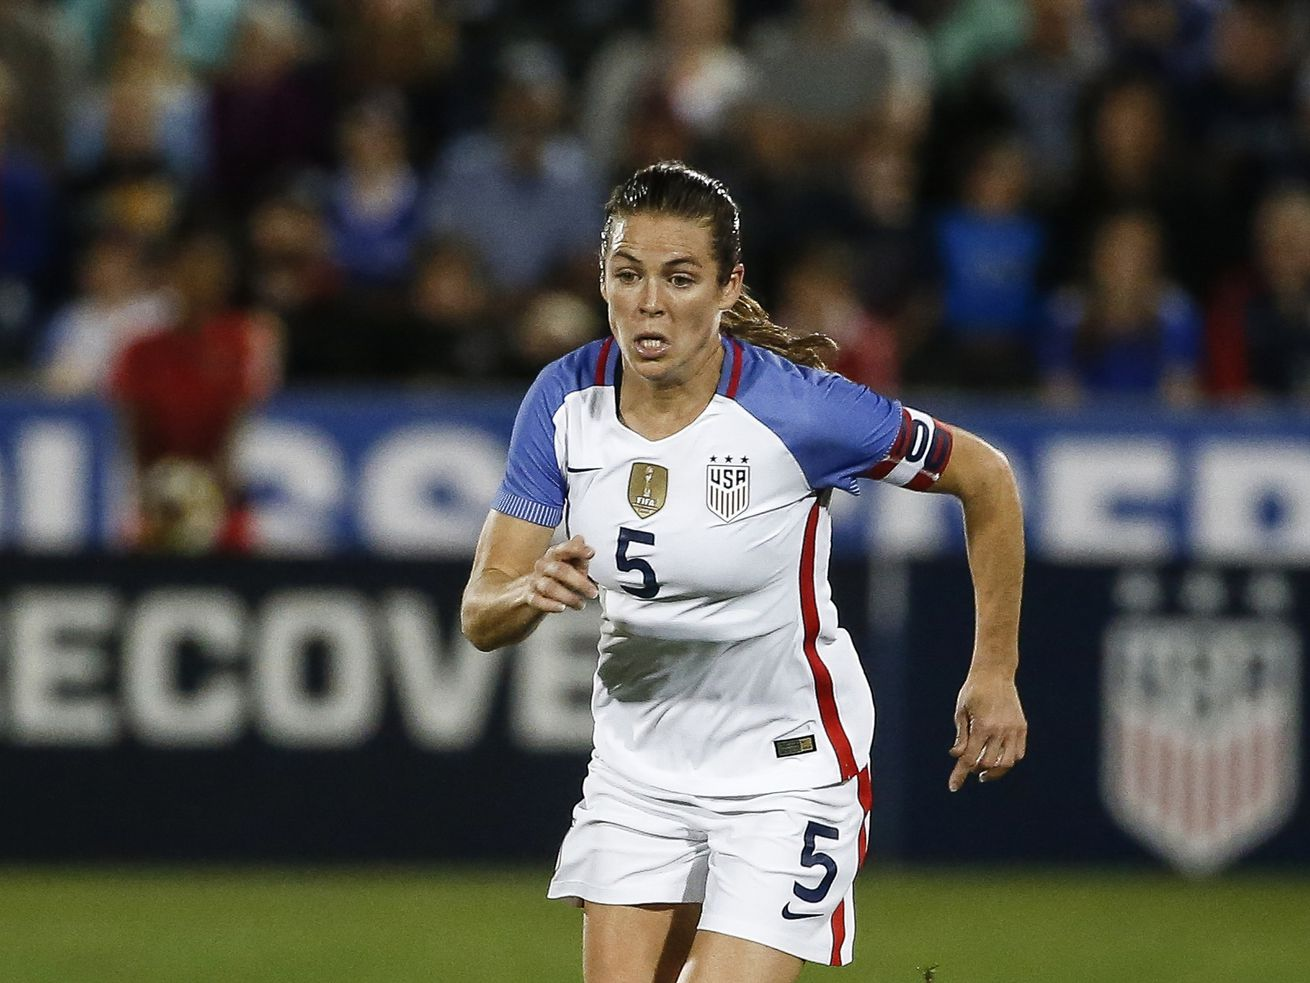 U.S. defender Kelly O'Hara (5) plays against New Zealand during the first half of an international friendly soccer match in Commerce City, Colo., Friday, Sept. 15, 2017.